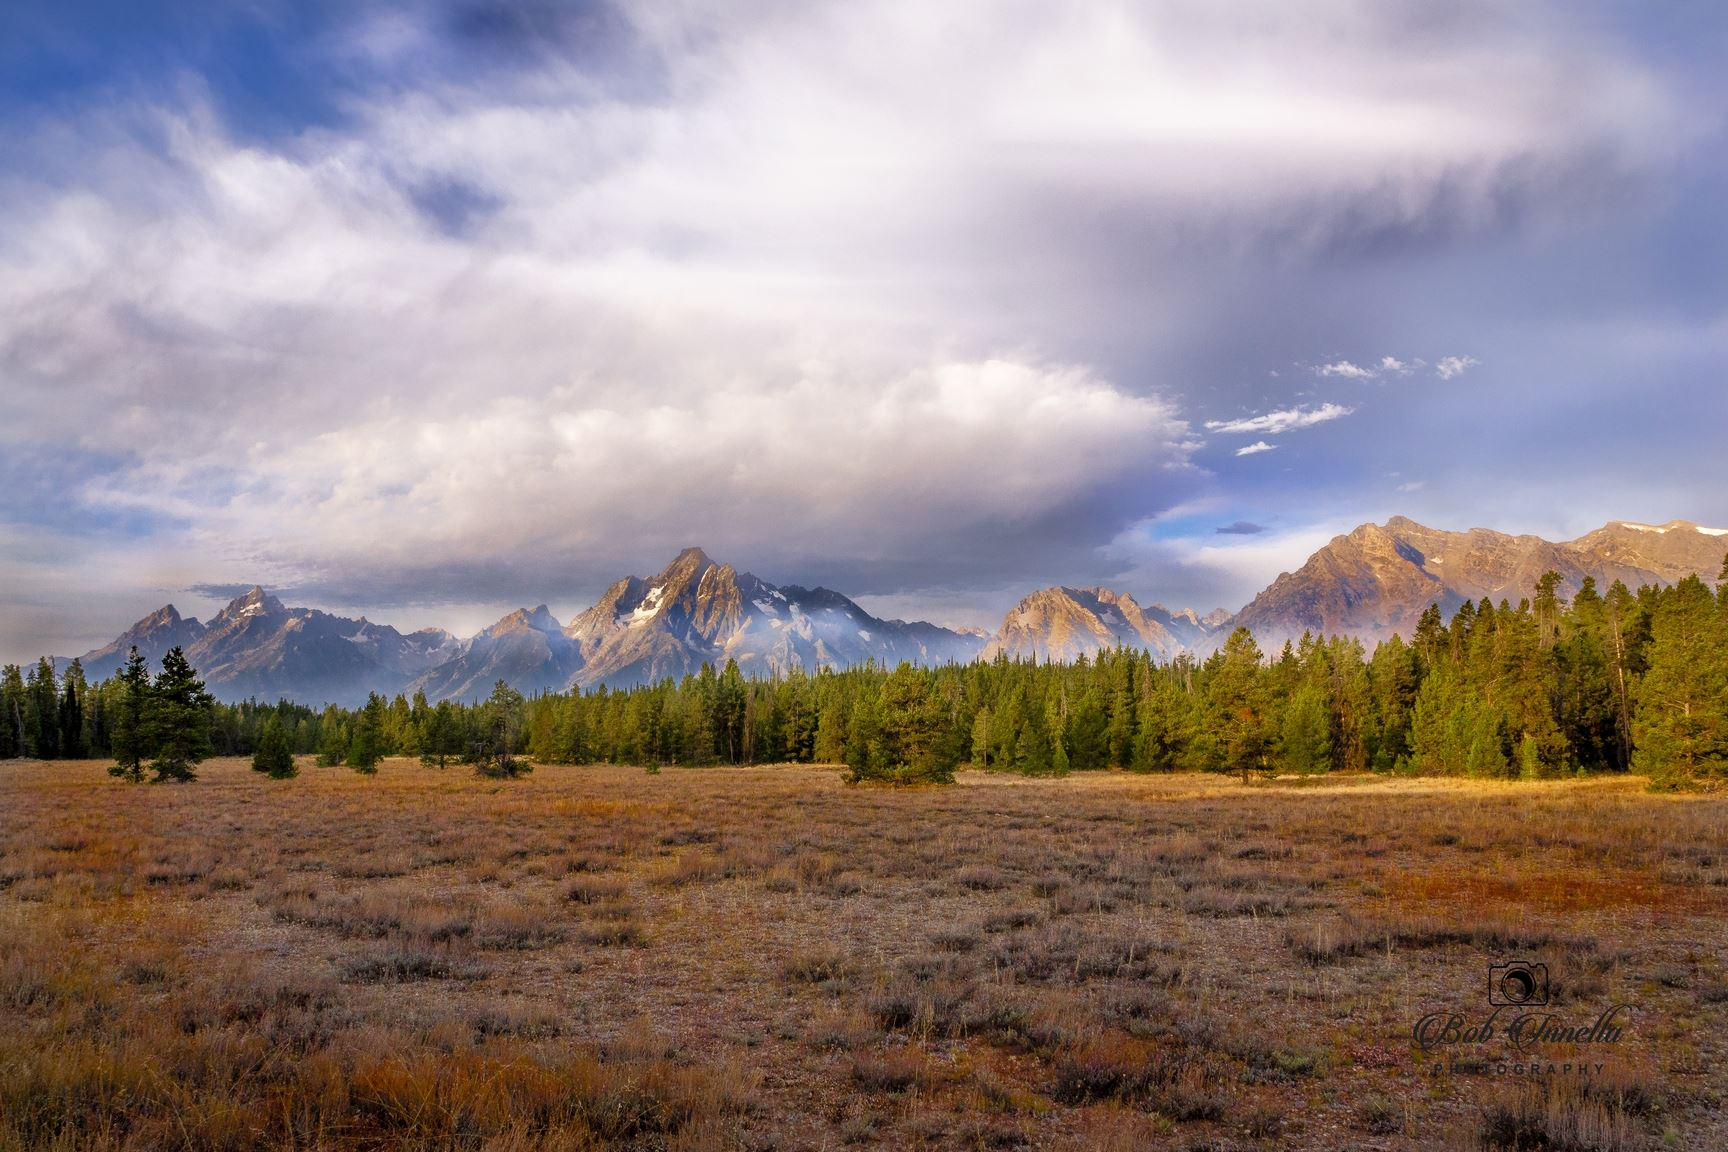 Grand Tetons - Near String Lake, Wyoming 2018 by Buckmaster